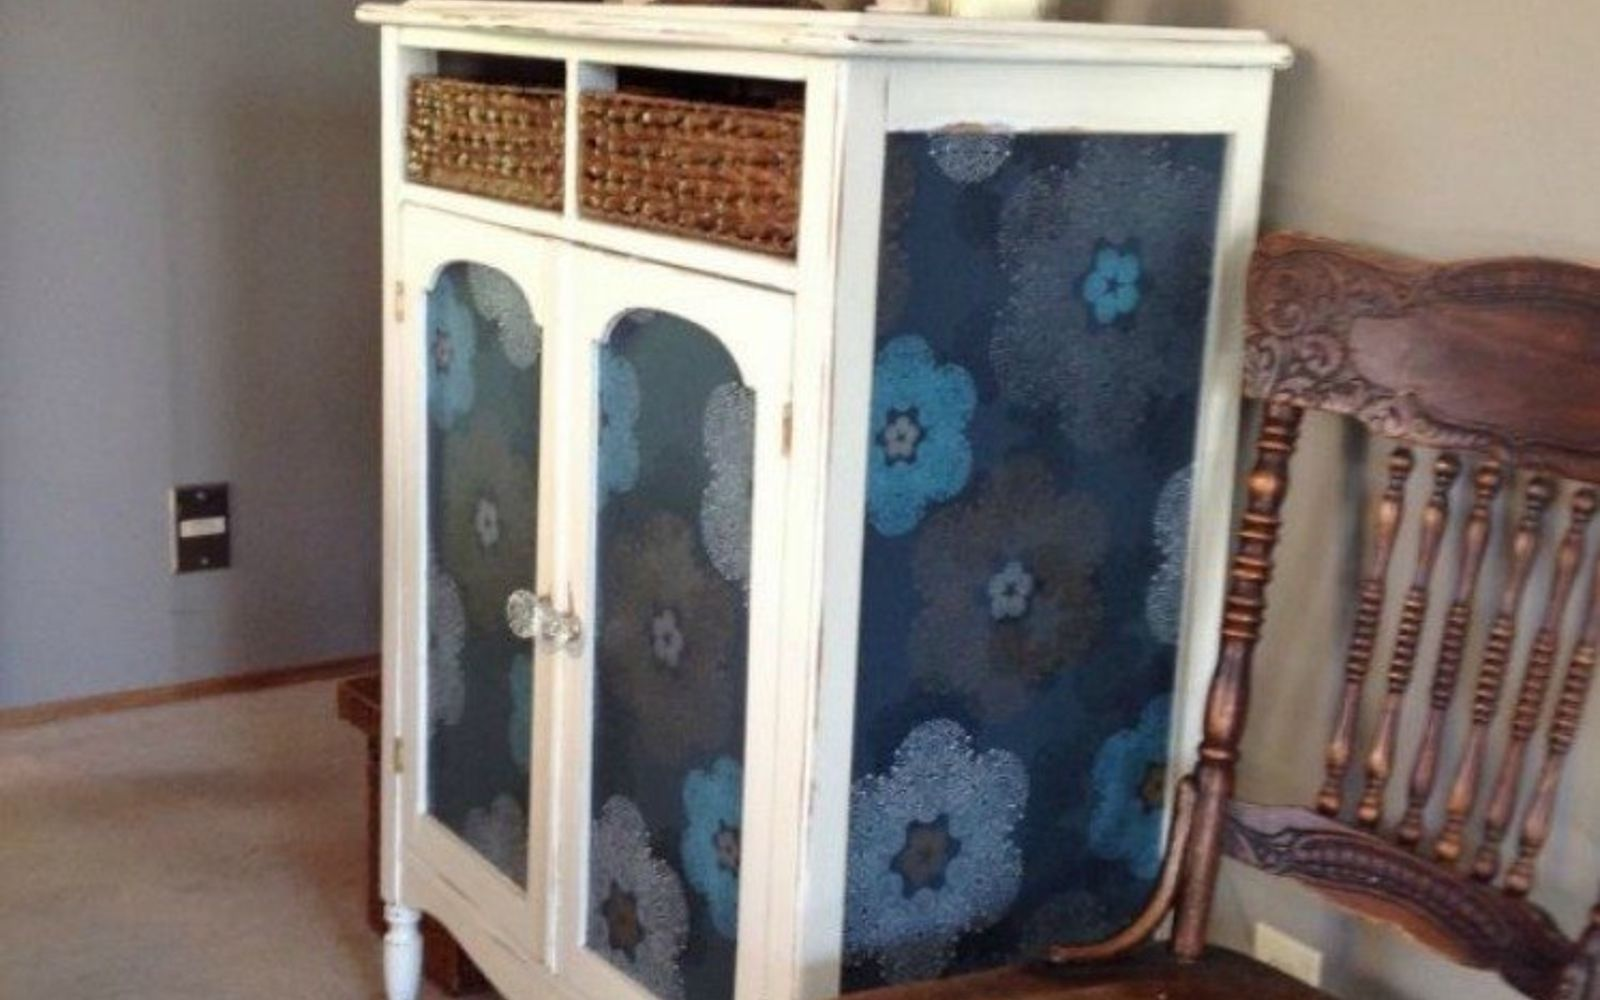 s 20 ways you never thought of using wallpaper, wall decor, Make over an old cabinet